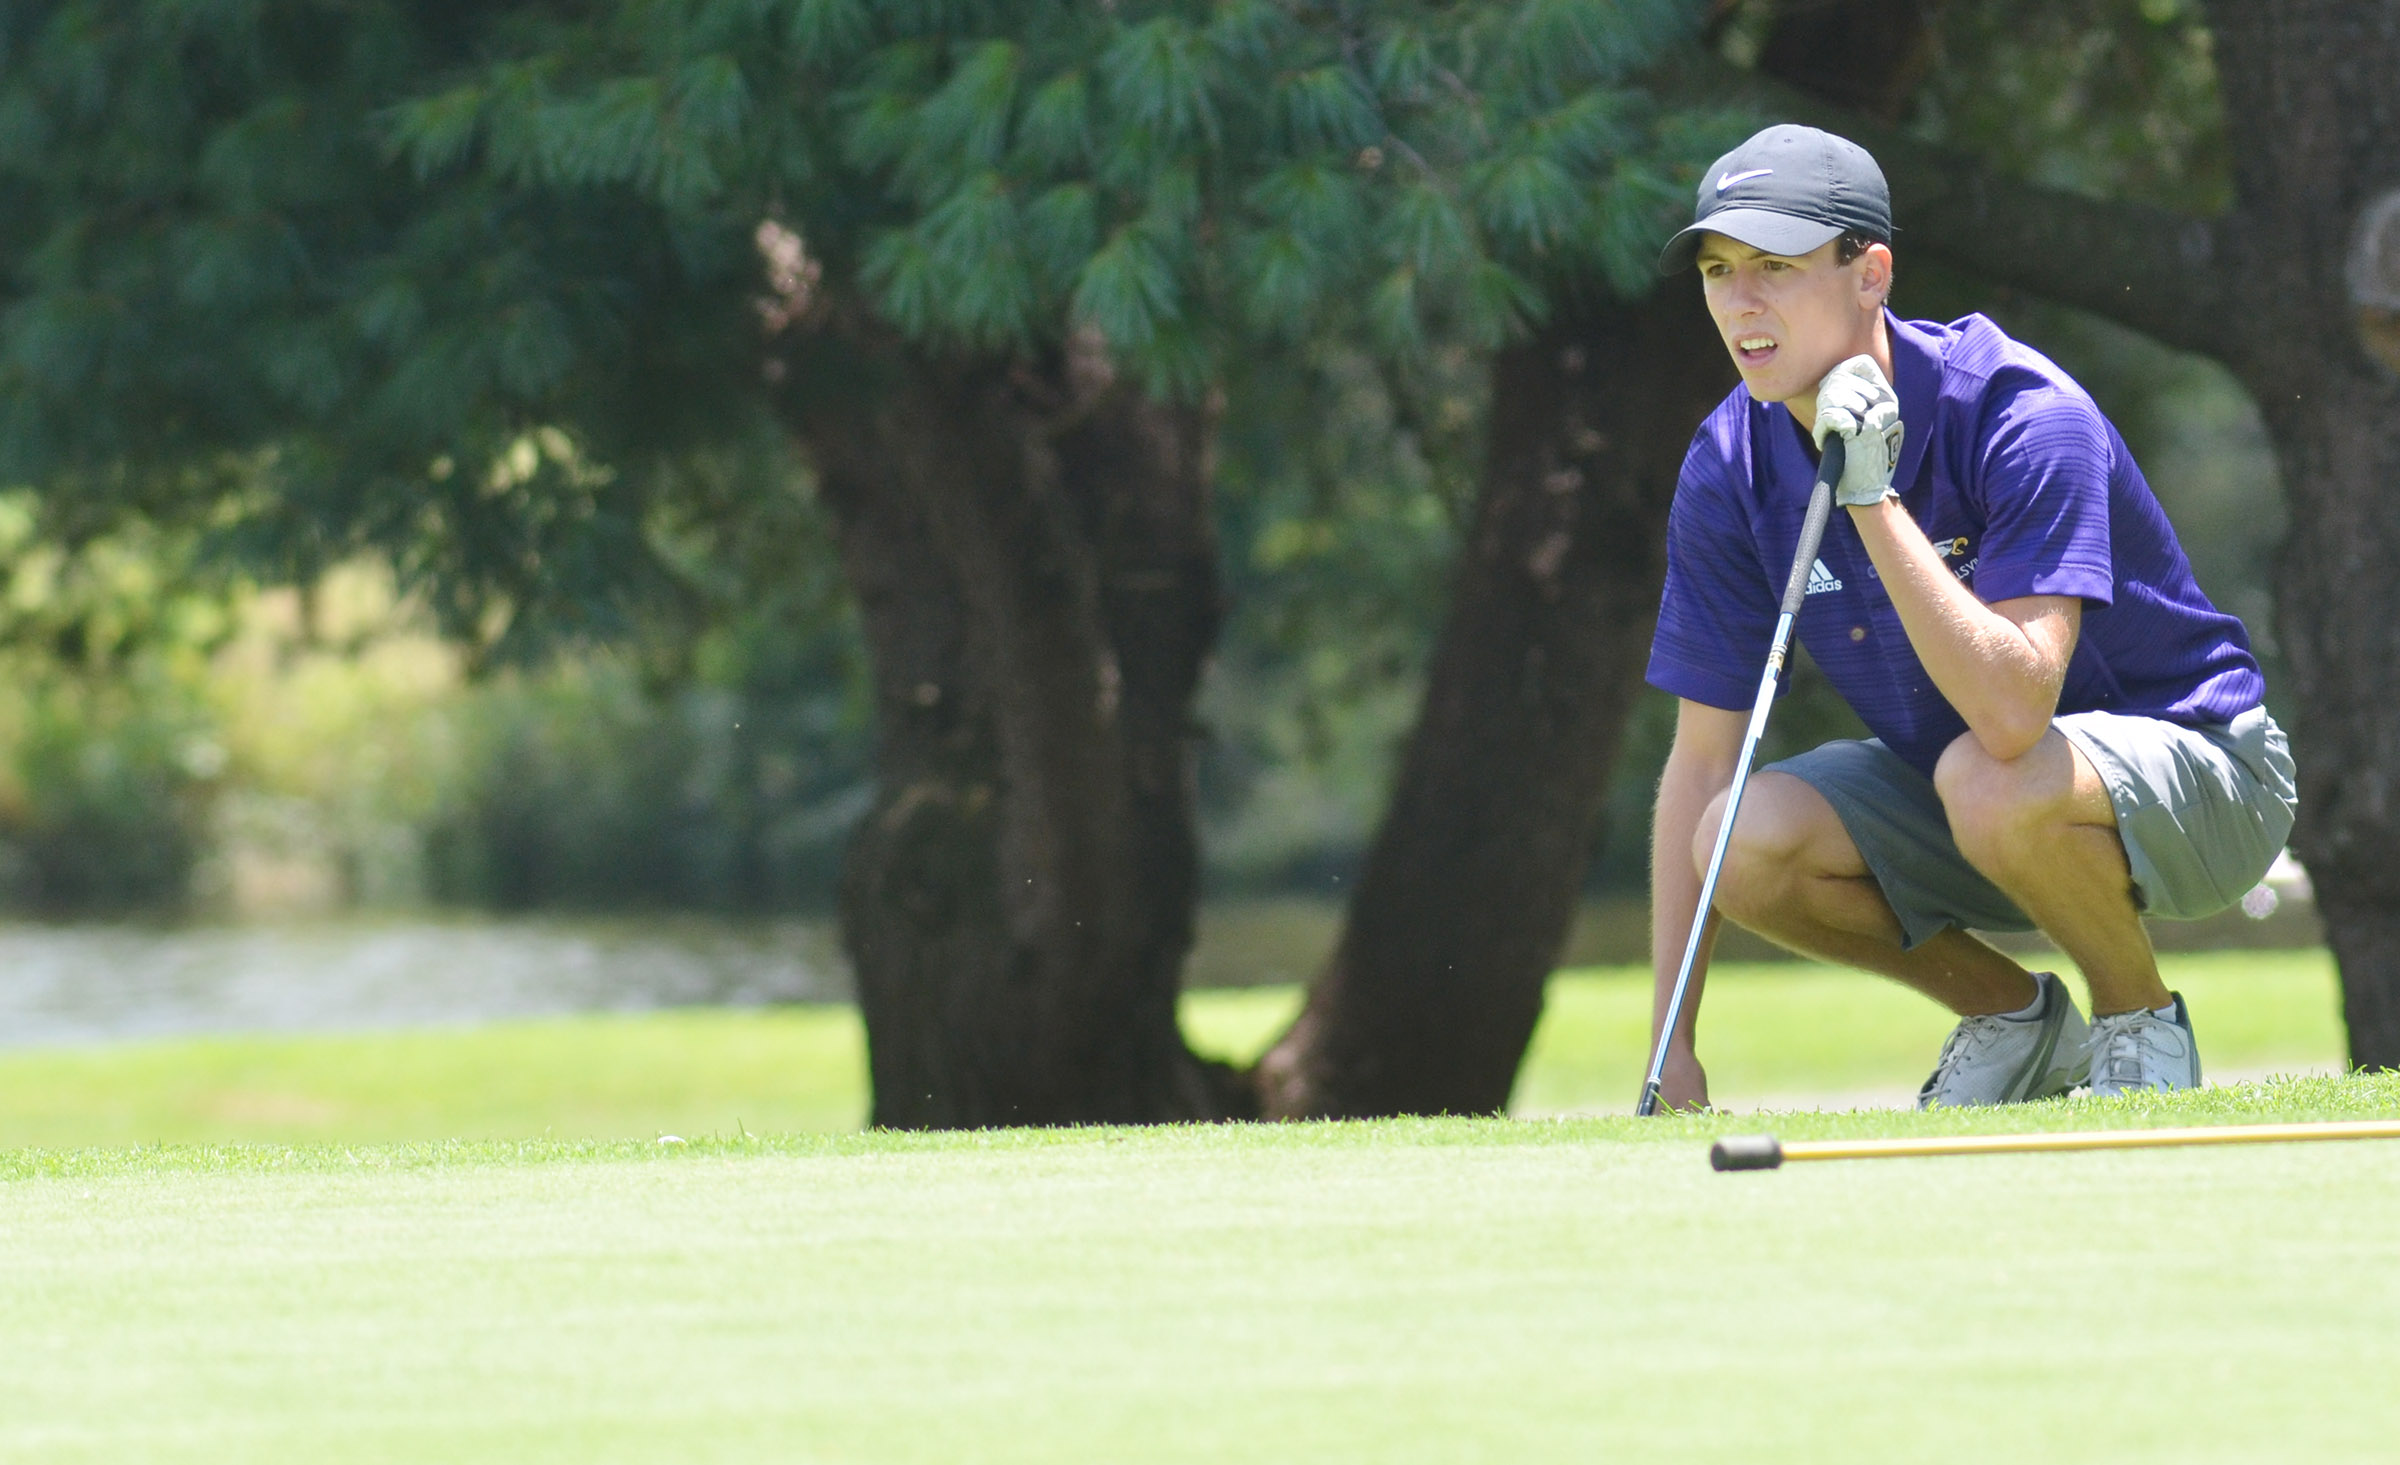 CHS junior Layton Hord looks at his shot.